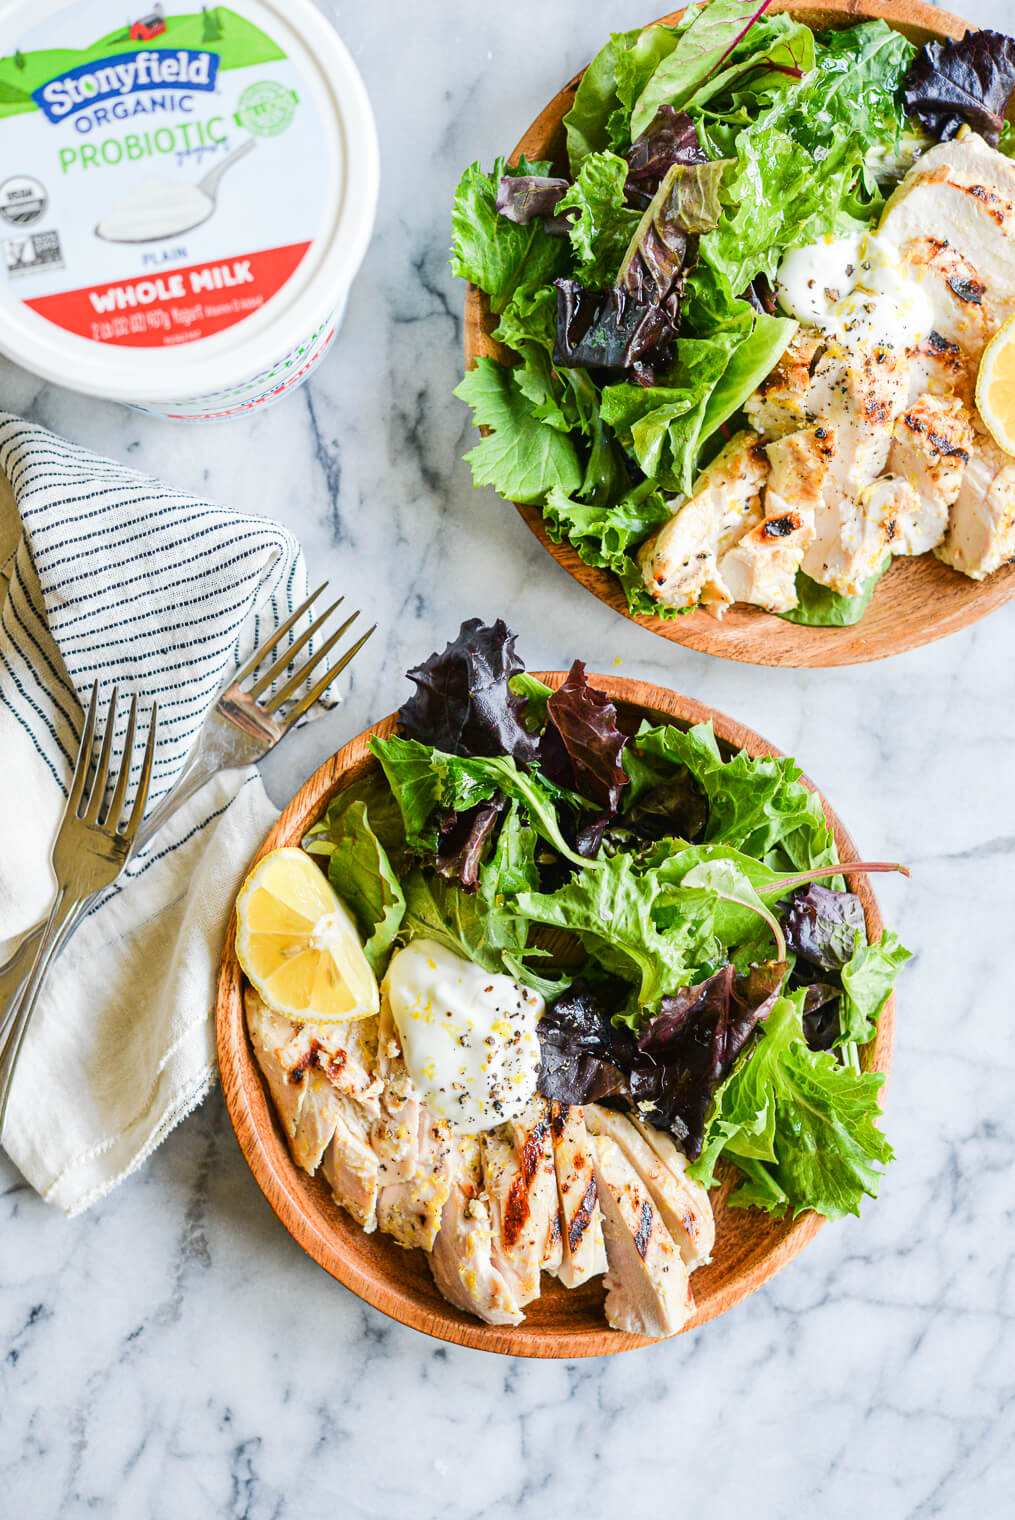 lemon pepper yogurt grilled chicken sliced and served in a bowl on top of mixed greens